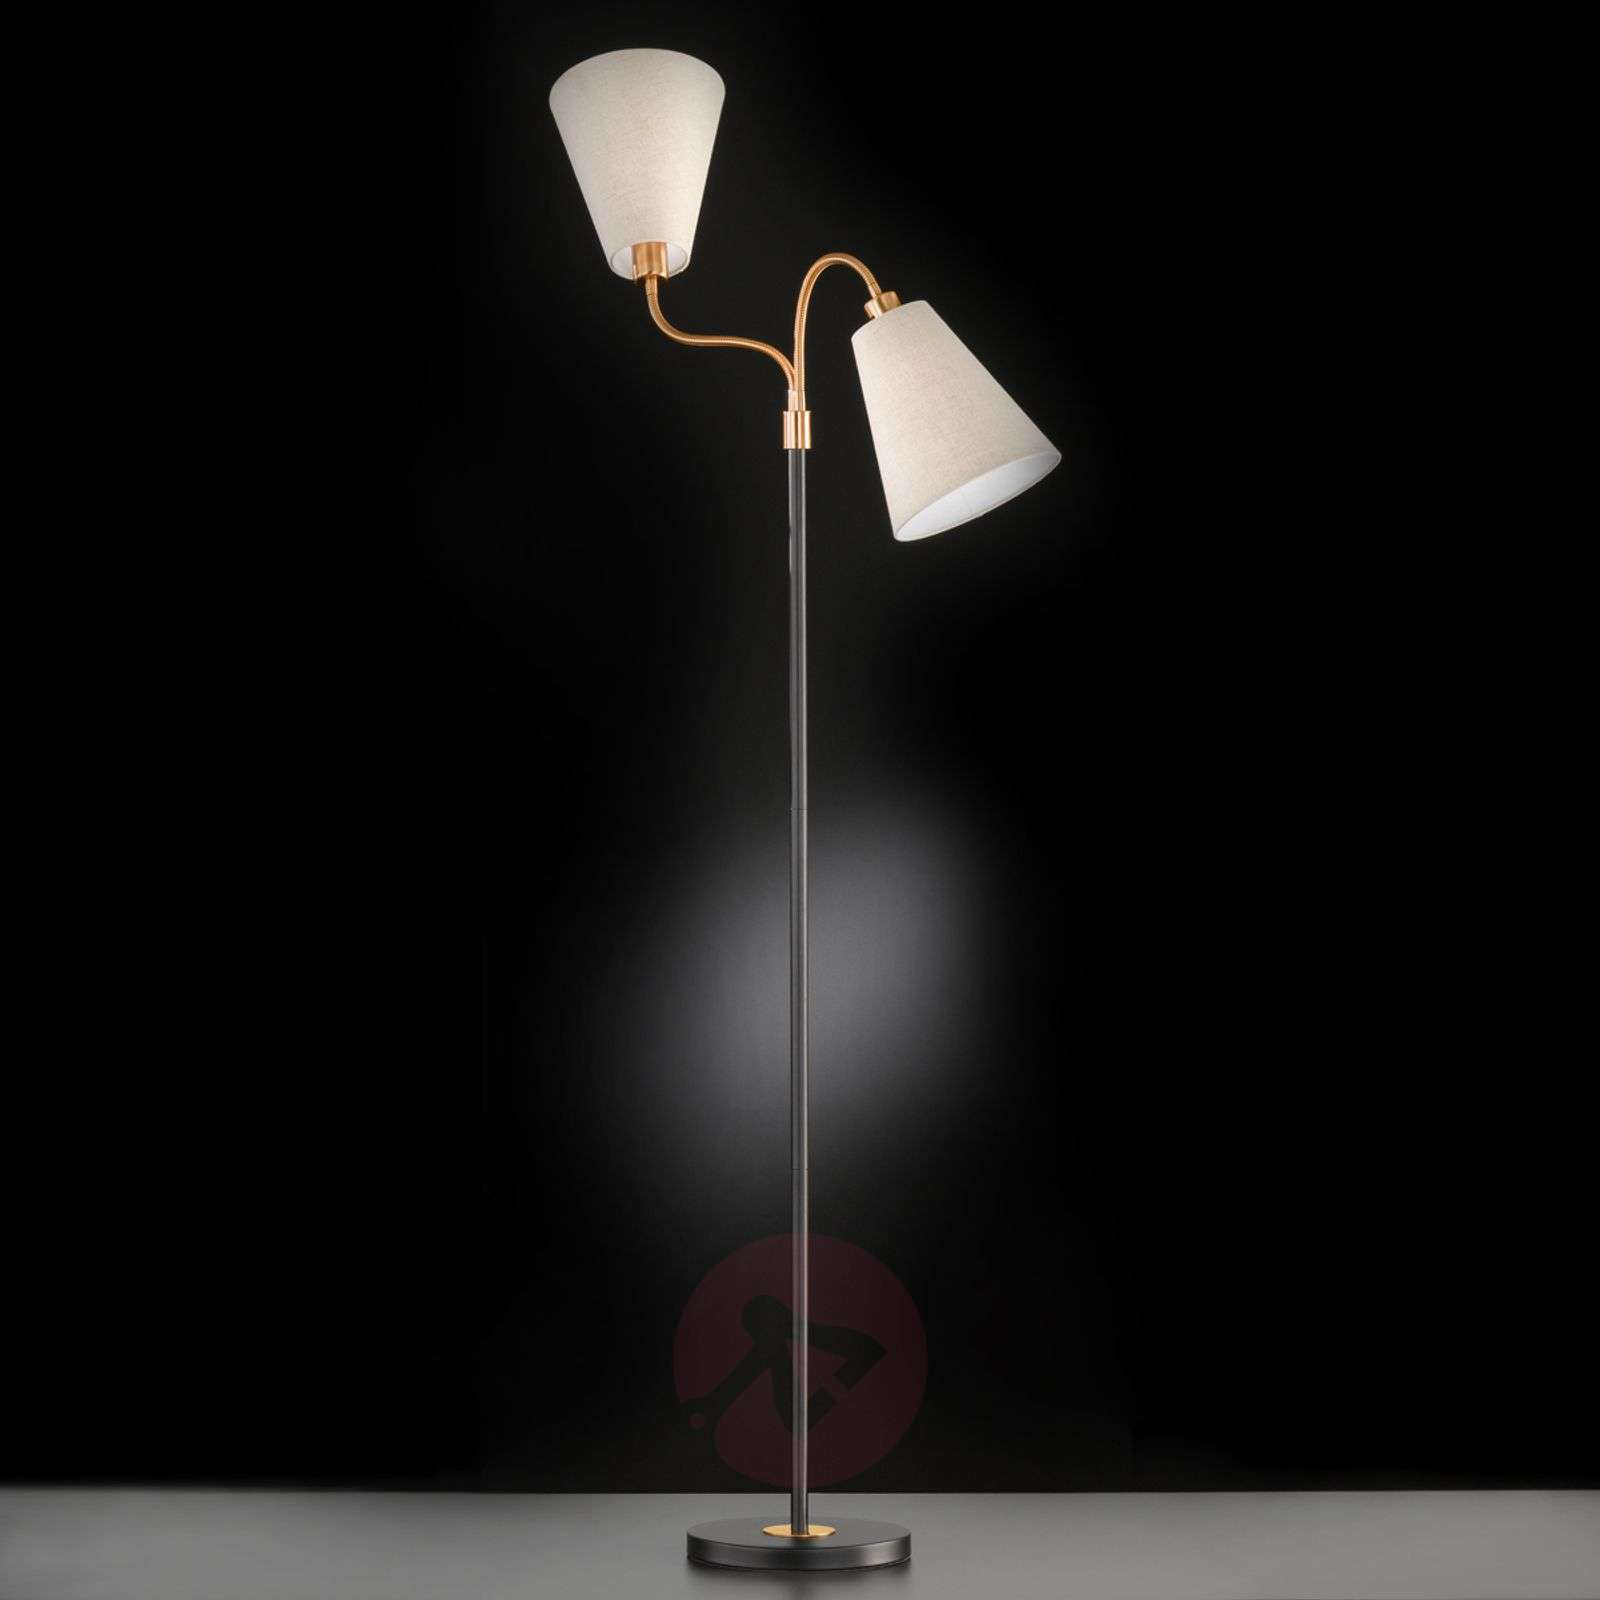 Hopper two bulb floor lamp blackbronze lights hopper two bulb floor lamp blackbronze 4581236 01 aloadofball Choice Image